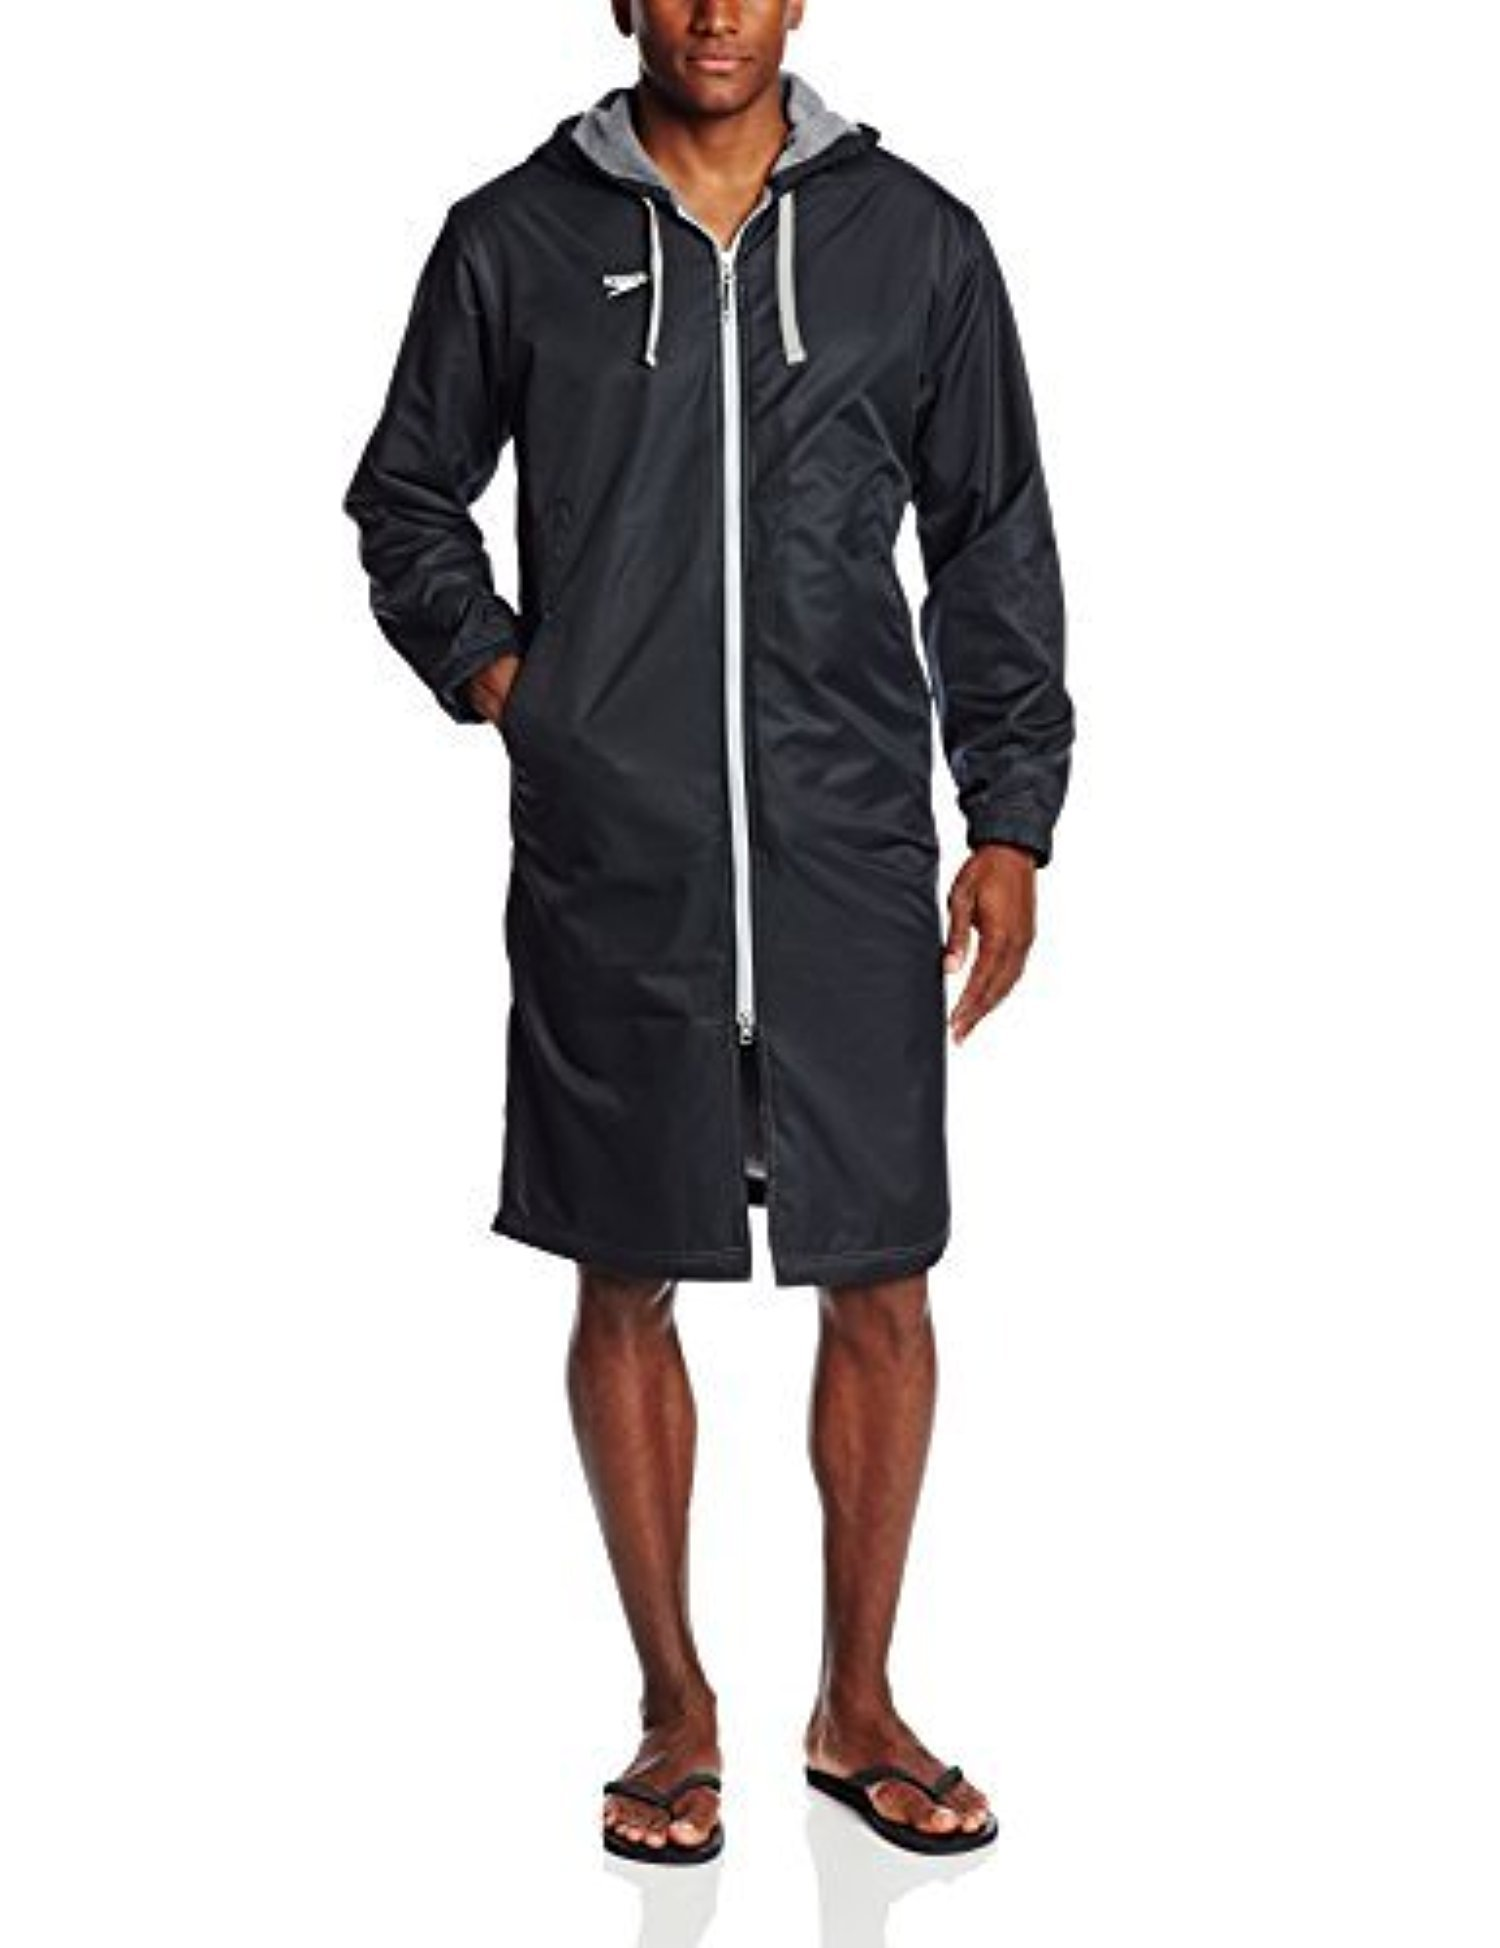 Speedo Men's Team Parka Speedo Black S & Travel Sunscreen Spray (SPF 15) Bundle by Speedo